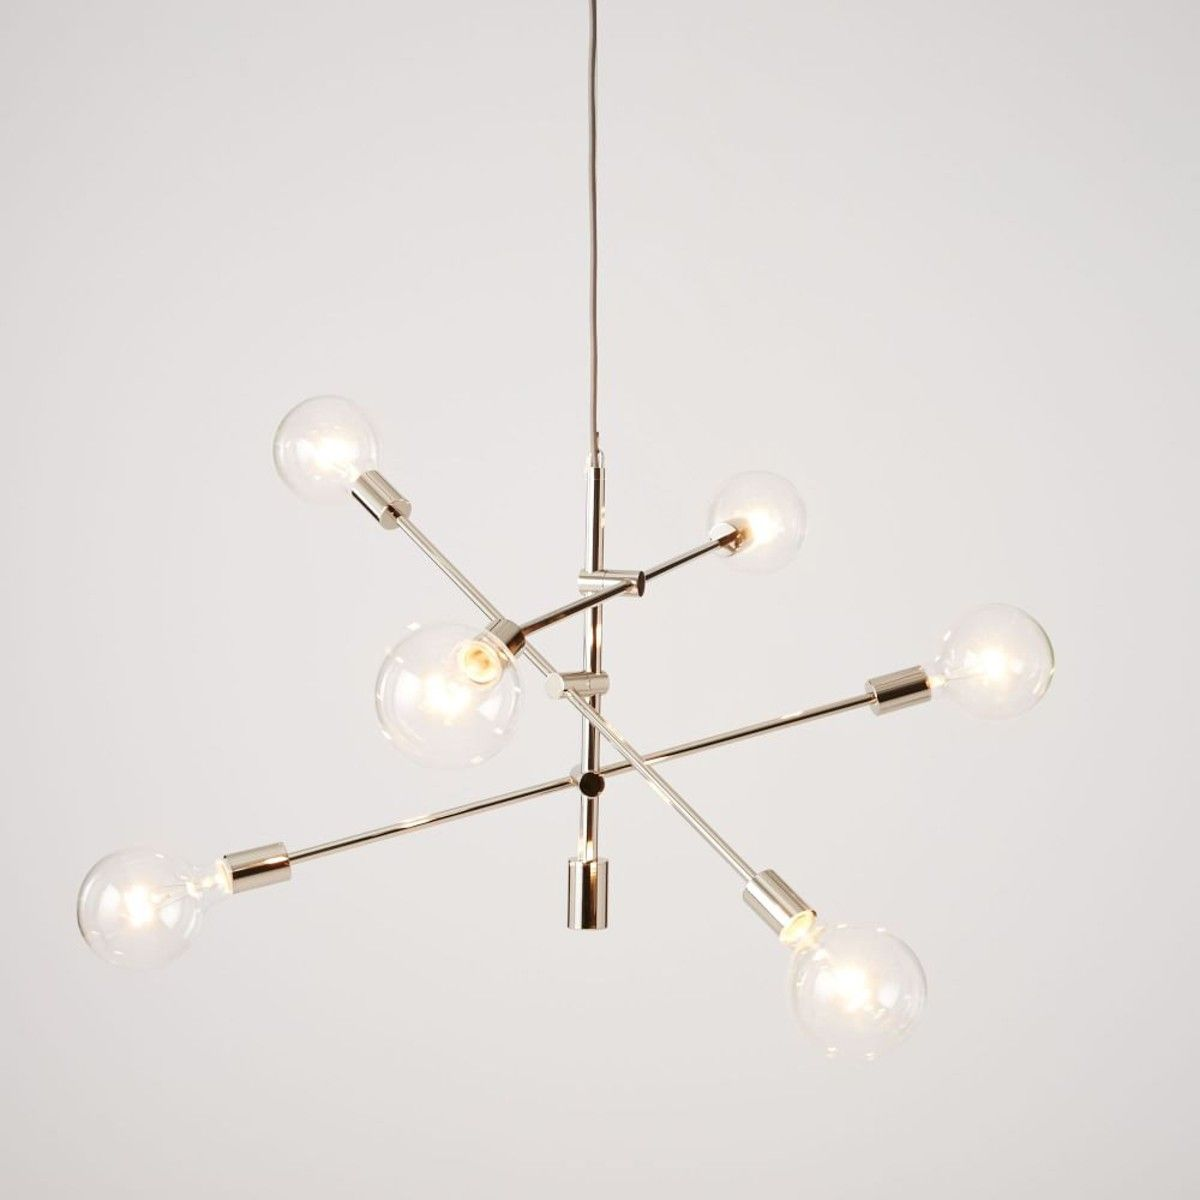 West elm mobile pendant from the 5 chicest celebrity bedrooms weve ever visited via mydomaineau